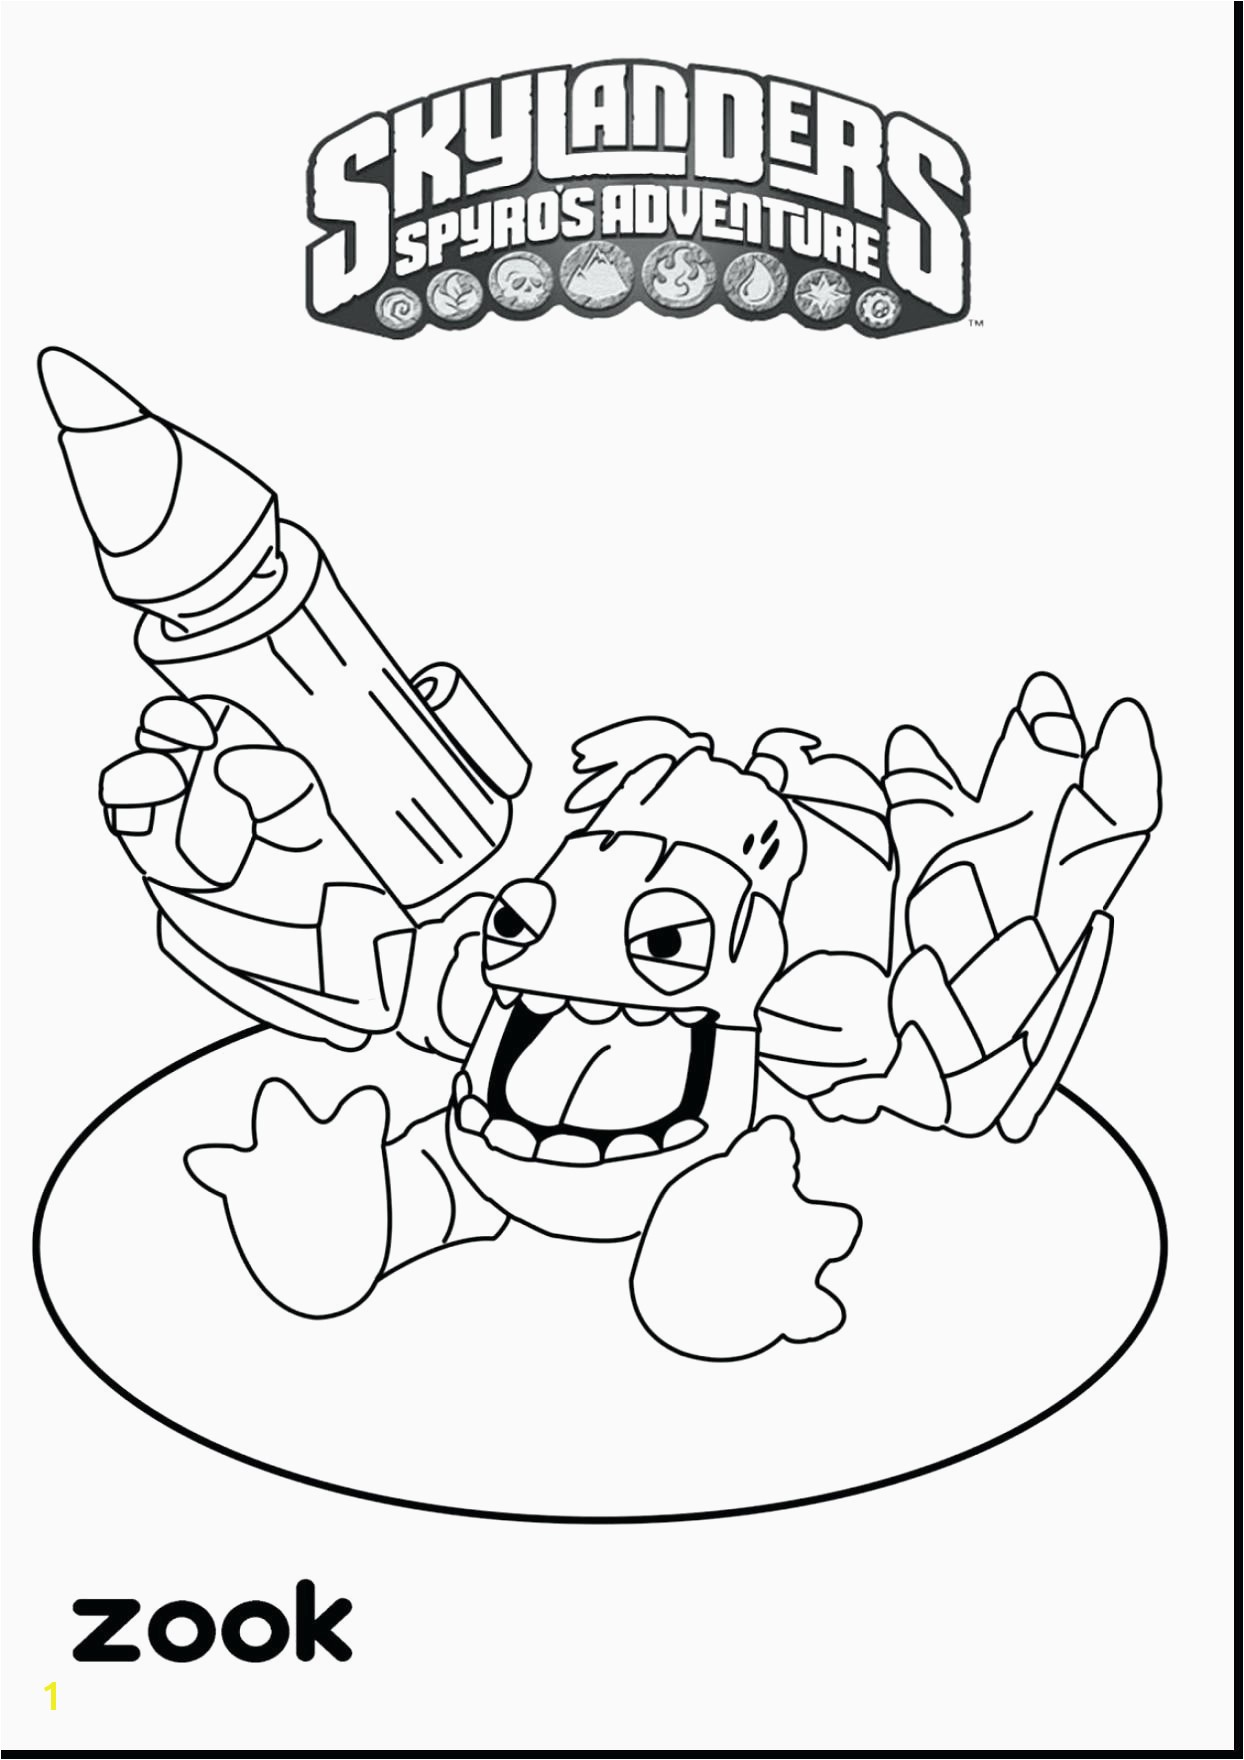 Anointing Of the Sick Coloring Page Best Unique Coloring Pages Stock Printable Coloring Pages